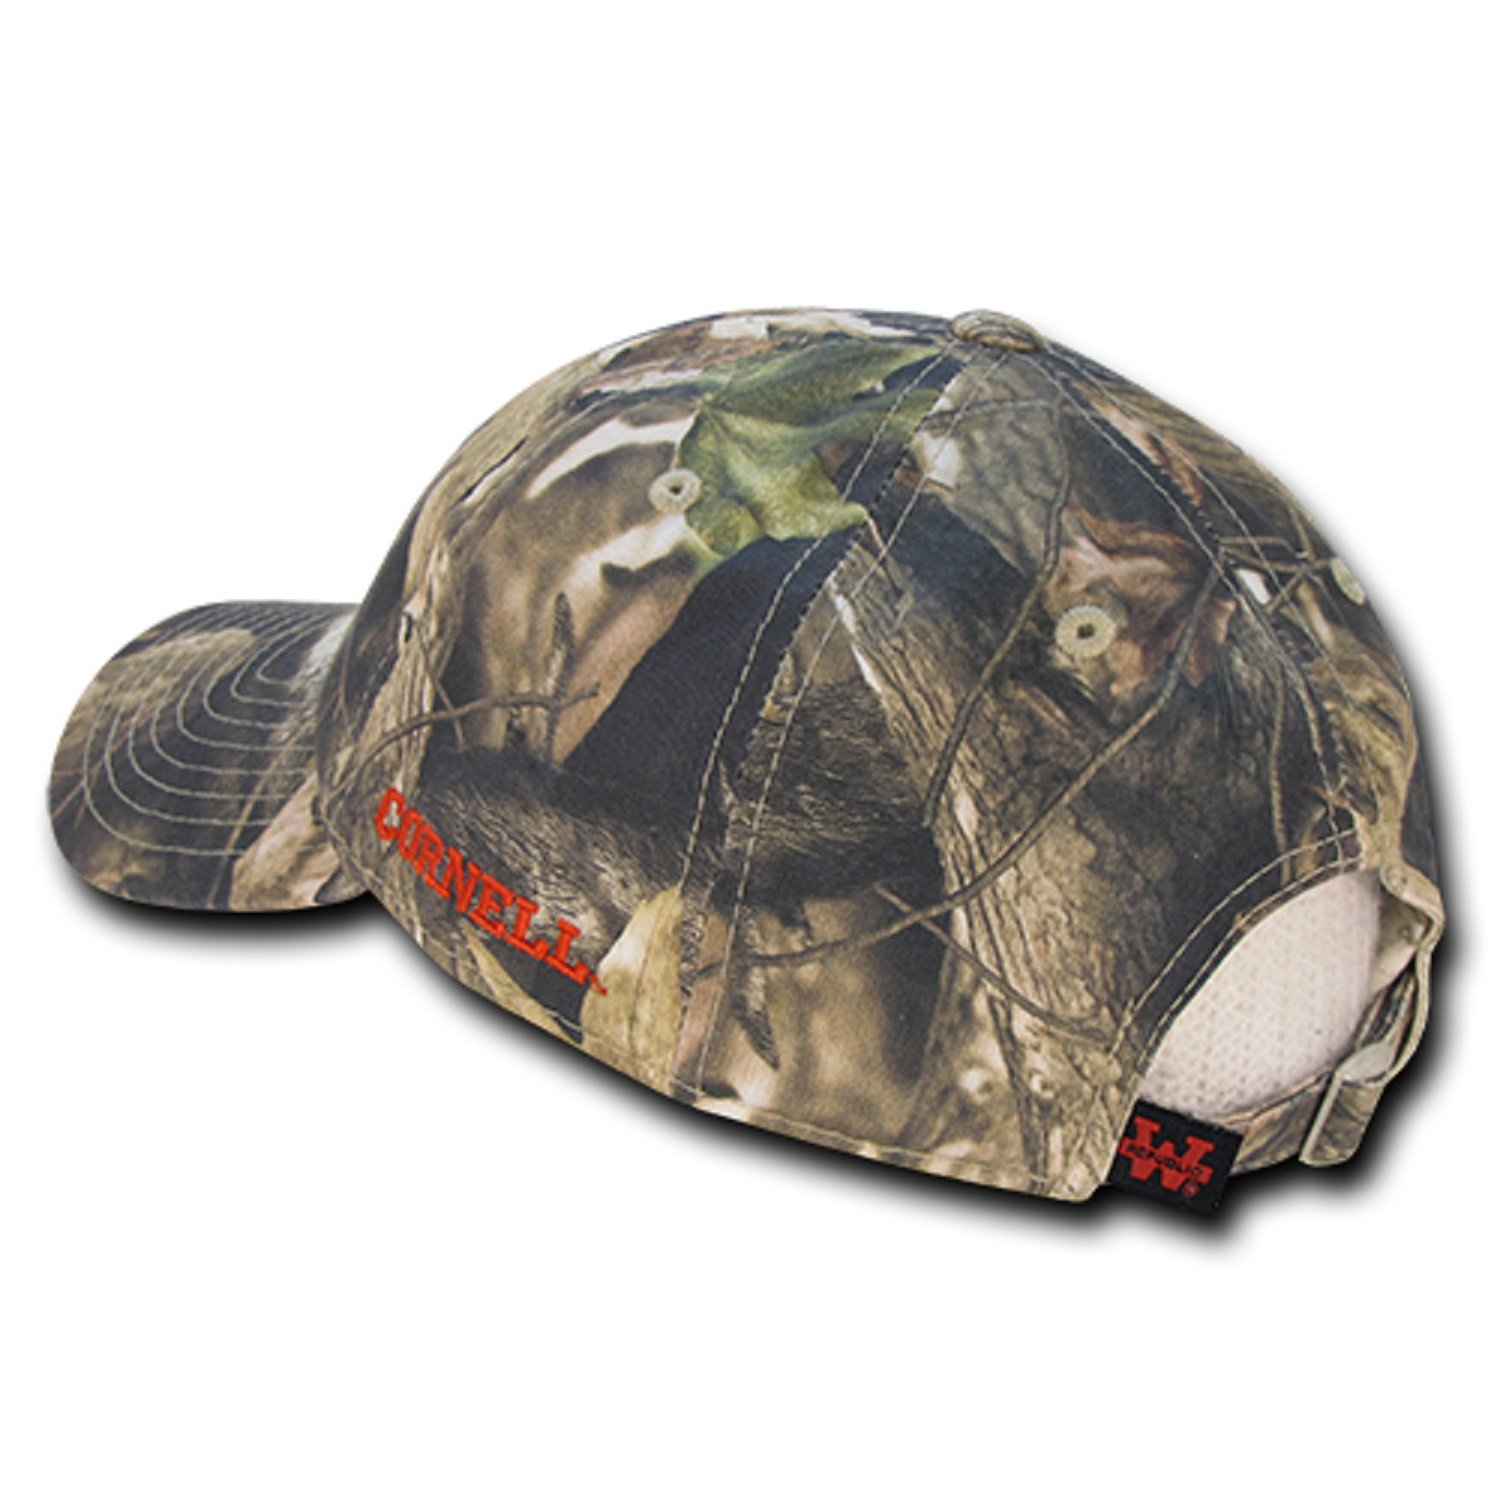 University of Cornell Bears Cotton Hybricam Camo Camouflage Polo Style  Baseball Ball Cap Hat at Amazon Men s Clothing store  79ba21b4515f